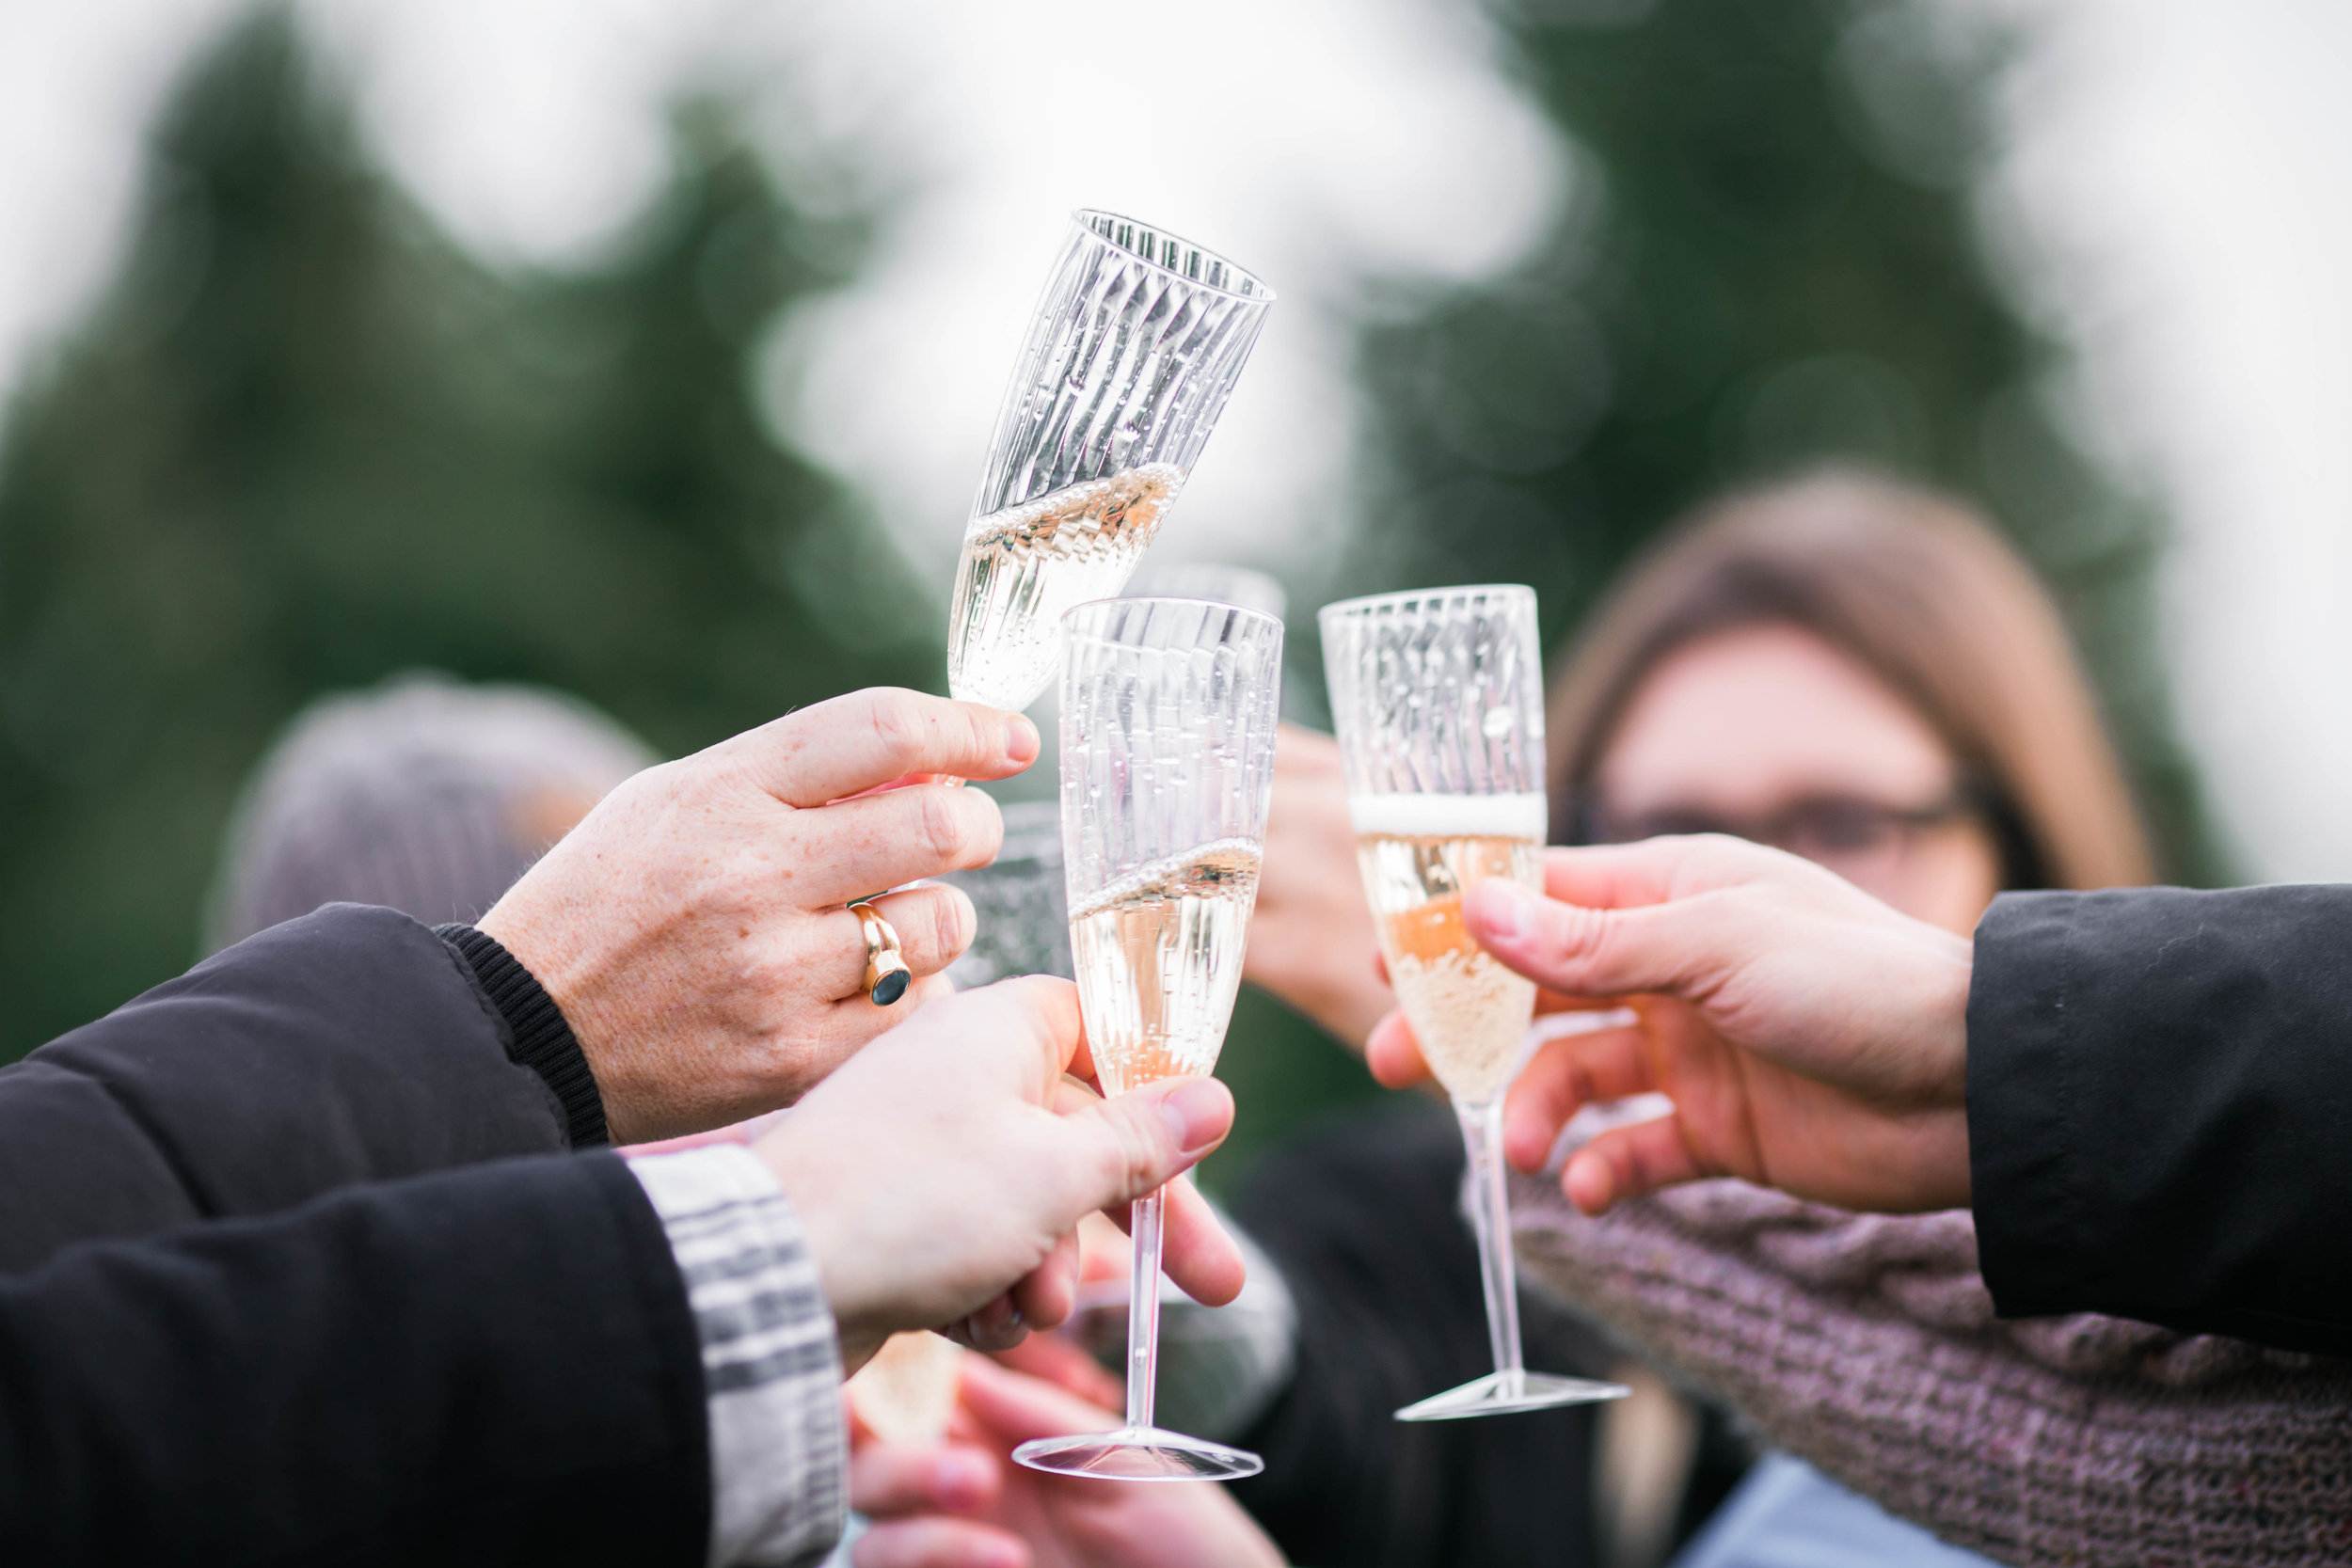 weddings & parties - Fancy having a champagne bar, cocktails and canapés, or a breakfast & coffee offering that's a little different…